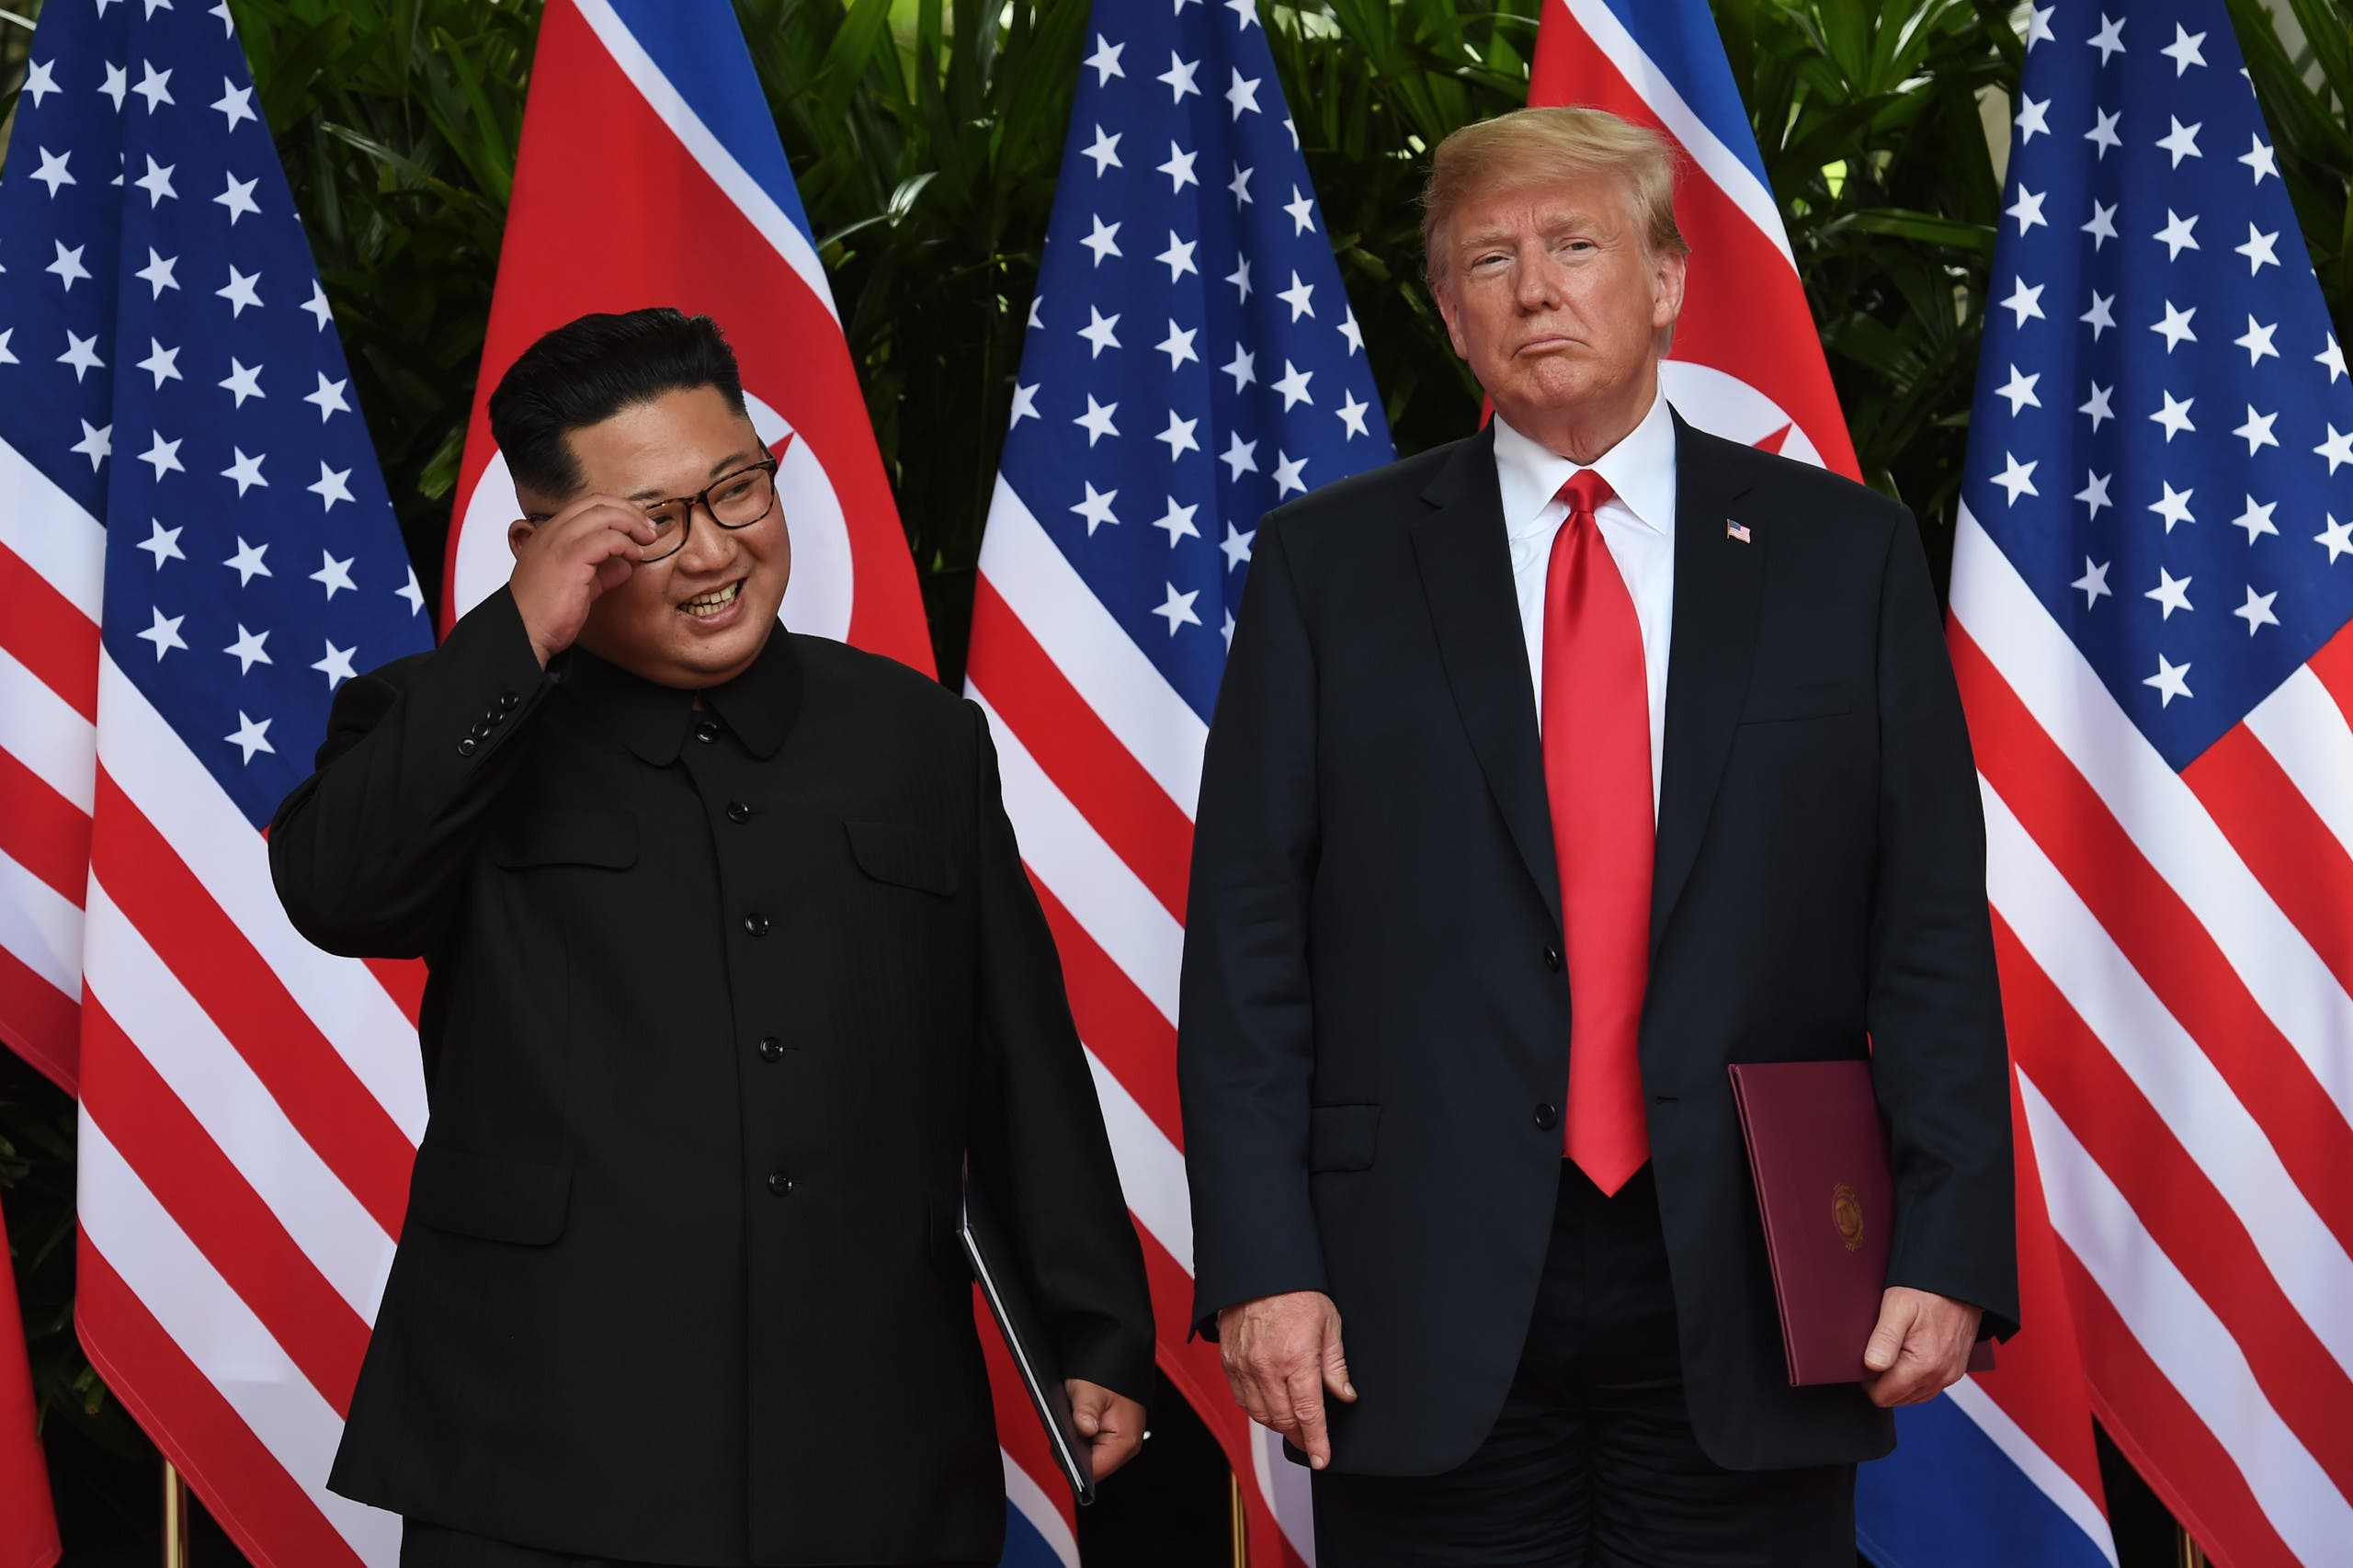 North Korea's leader Kim Jong Un (L) poses with US President Donald Trump (R) after taking part in a signing ceremony at the end of their historic US-North Korea summit, at the Capella Hotel on Sentosa island in Singapore on June 12, 2018. Donald Trump and Kim Jong Un became on June 12 the first sitting US and North Korean leaders to meet, shake hands and negotiate to end a decades-old nuclear stand-off. (AFP)